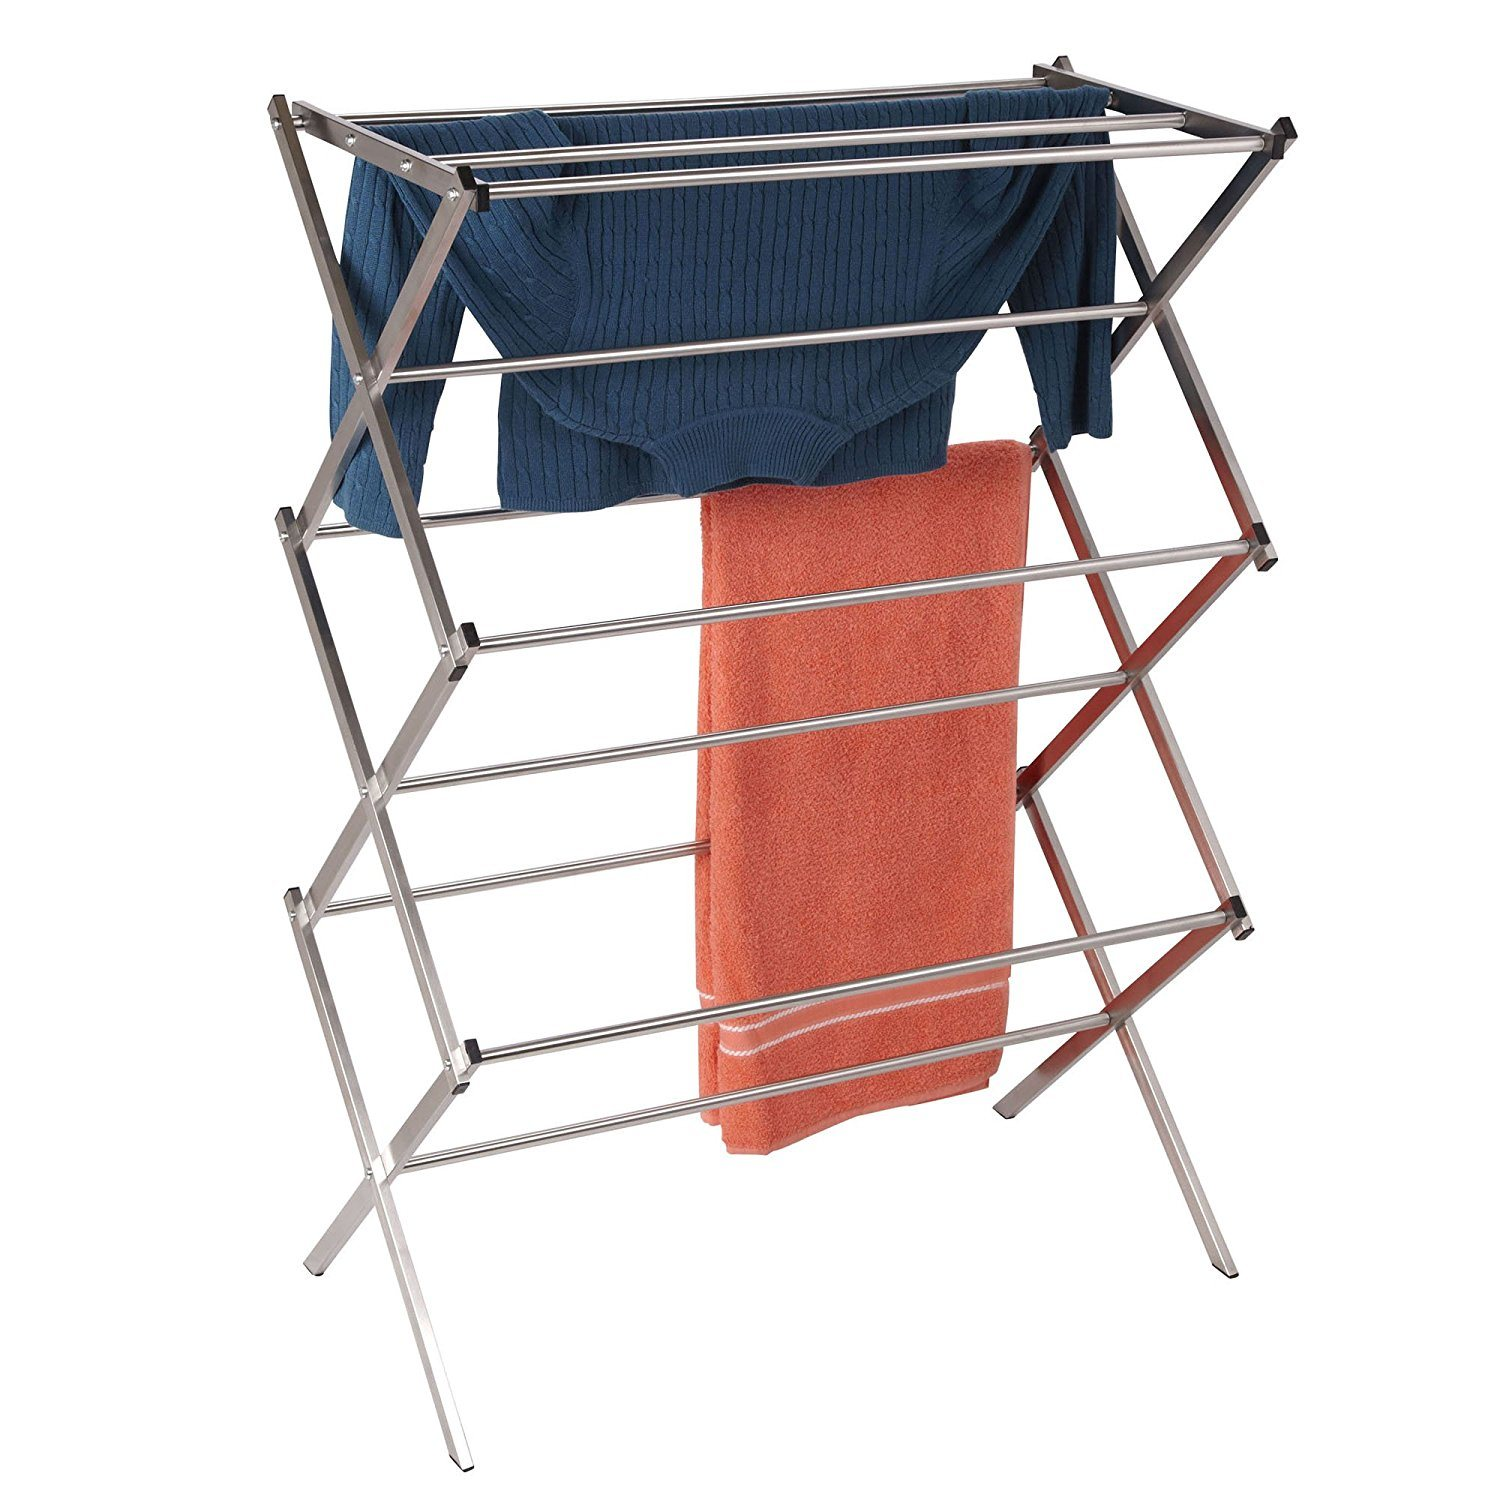 China Folding X-Frame Clothes Drying Rack, Stainless Steel - China ...